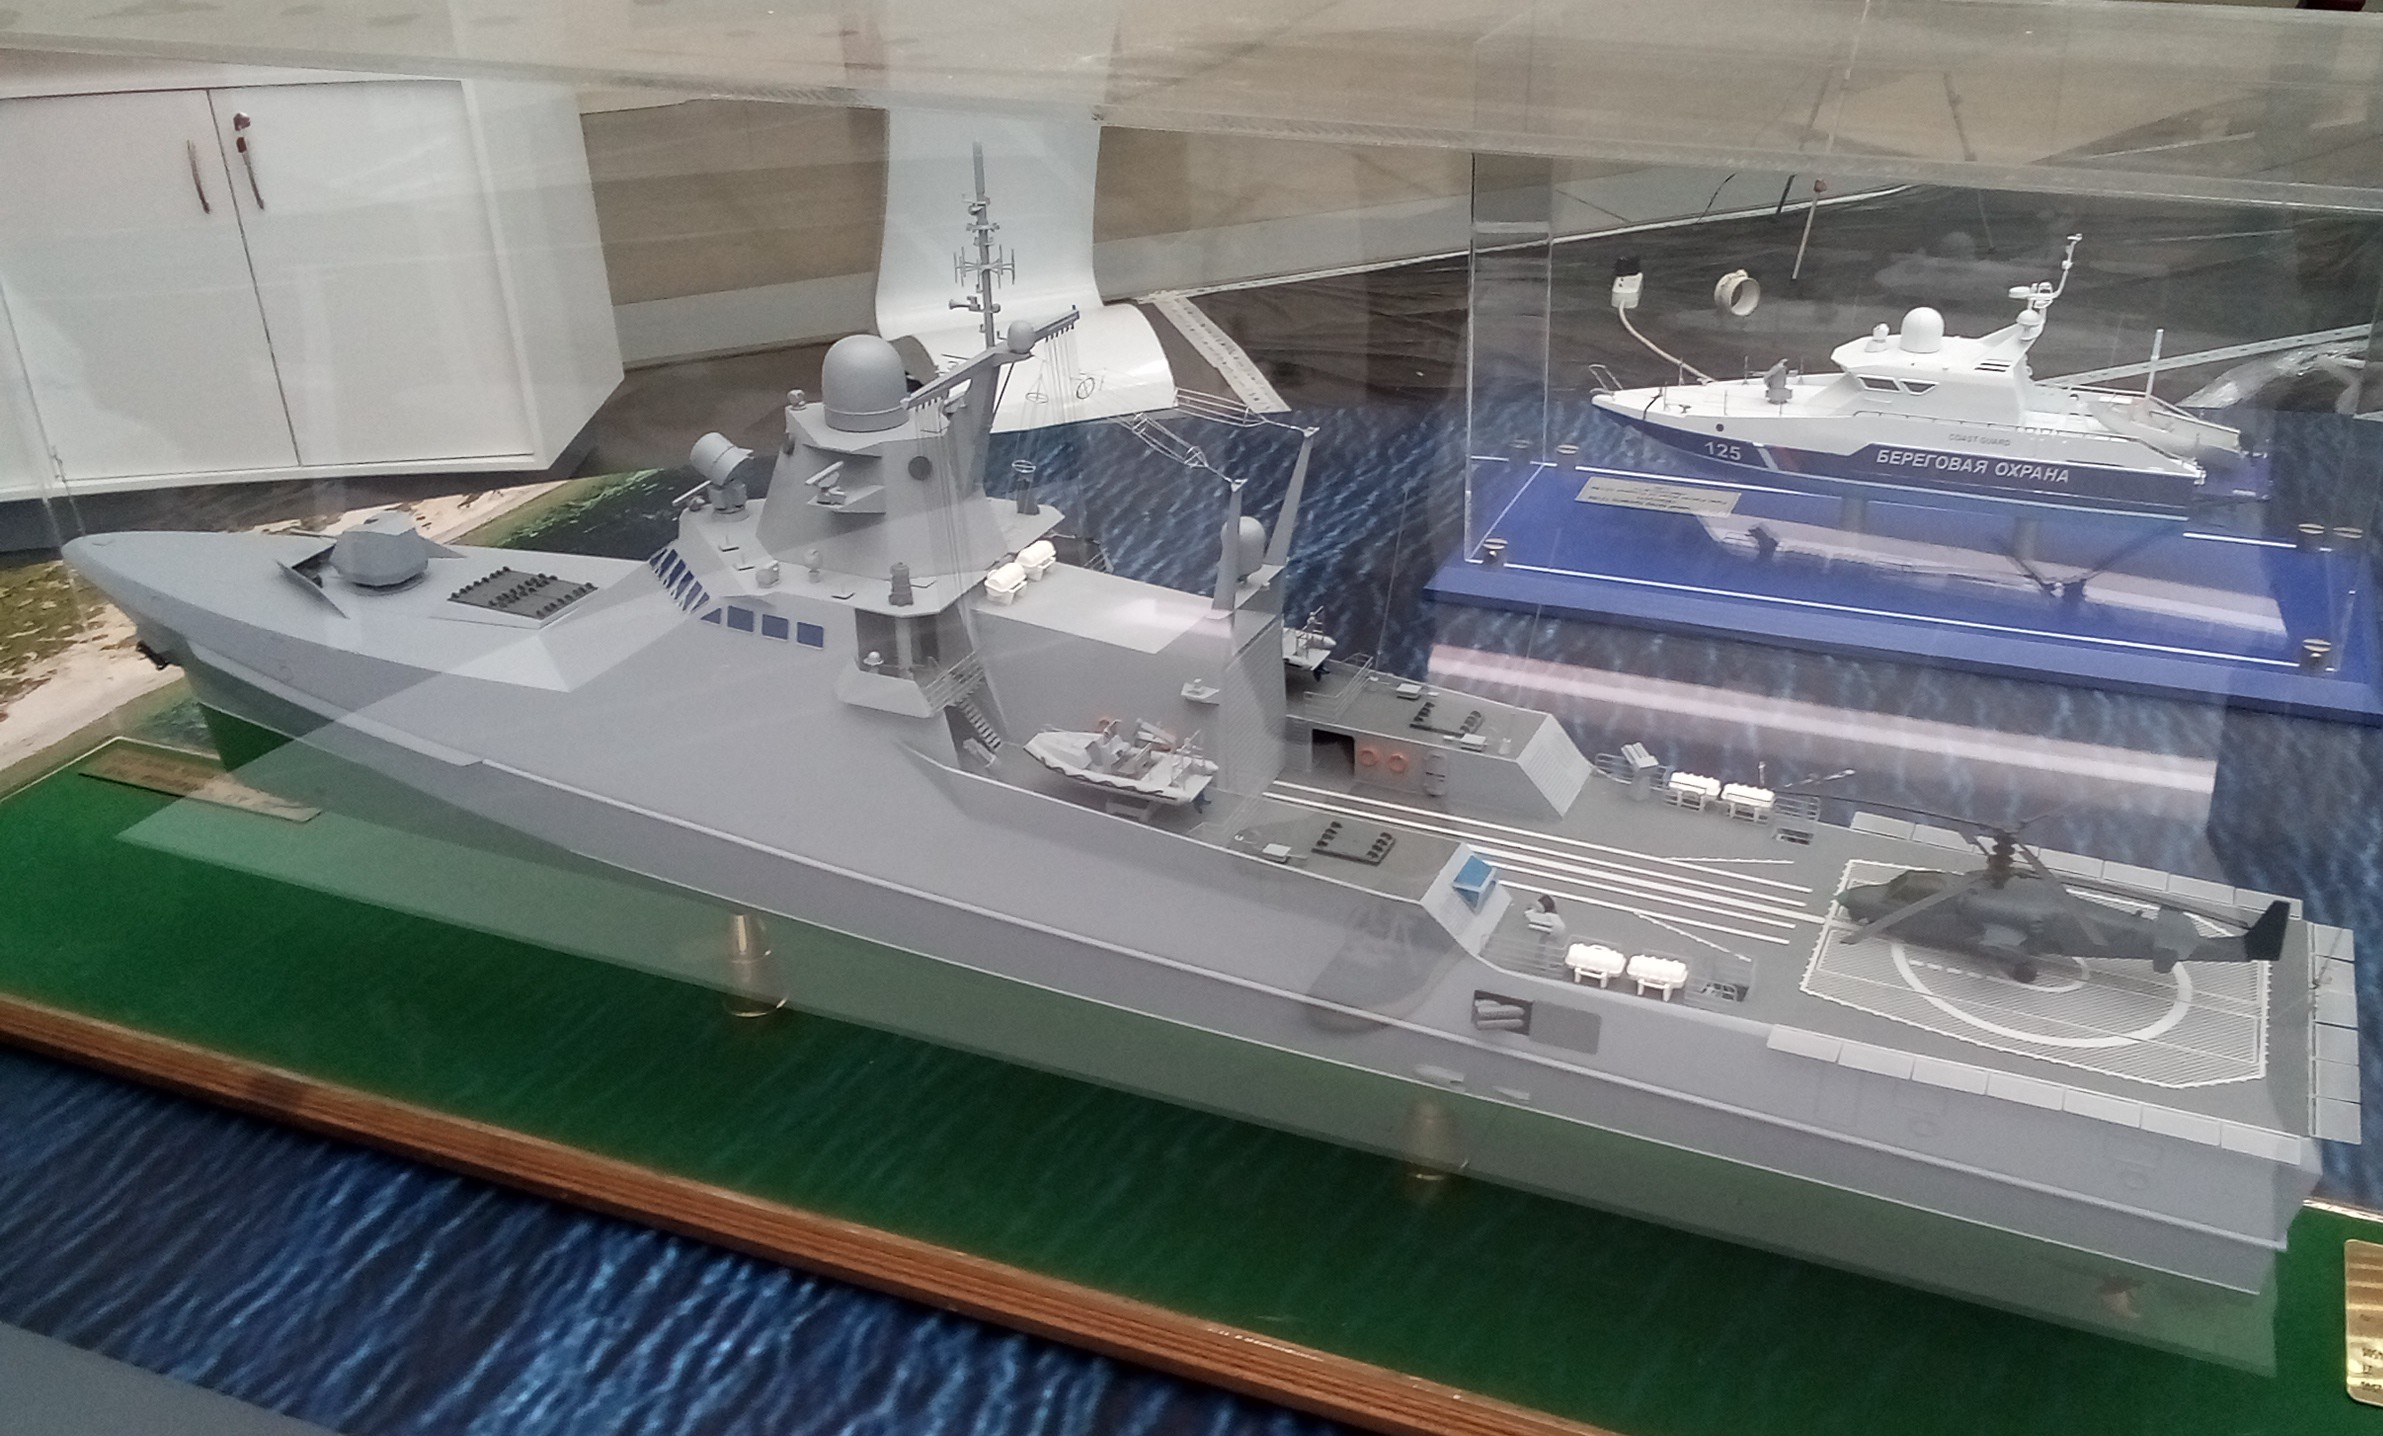 Project 22160 Bykov-class patrol ship - Page 24 22-9808809-img-20210622-151958-449-2